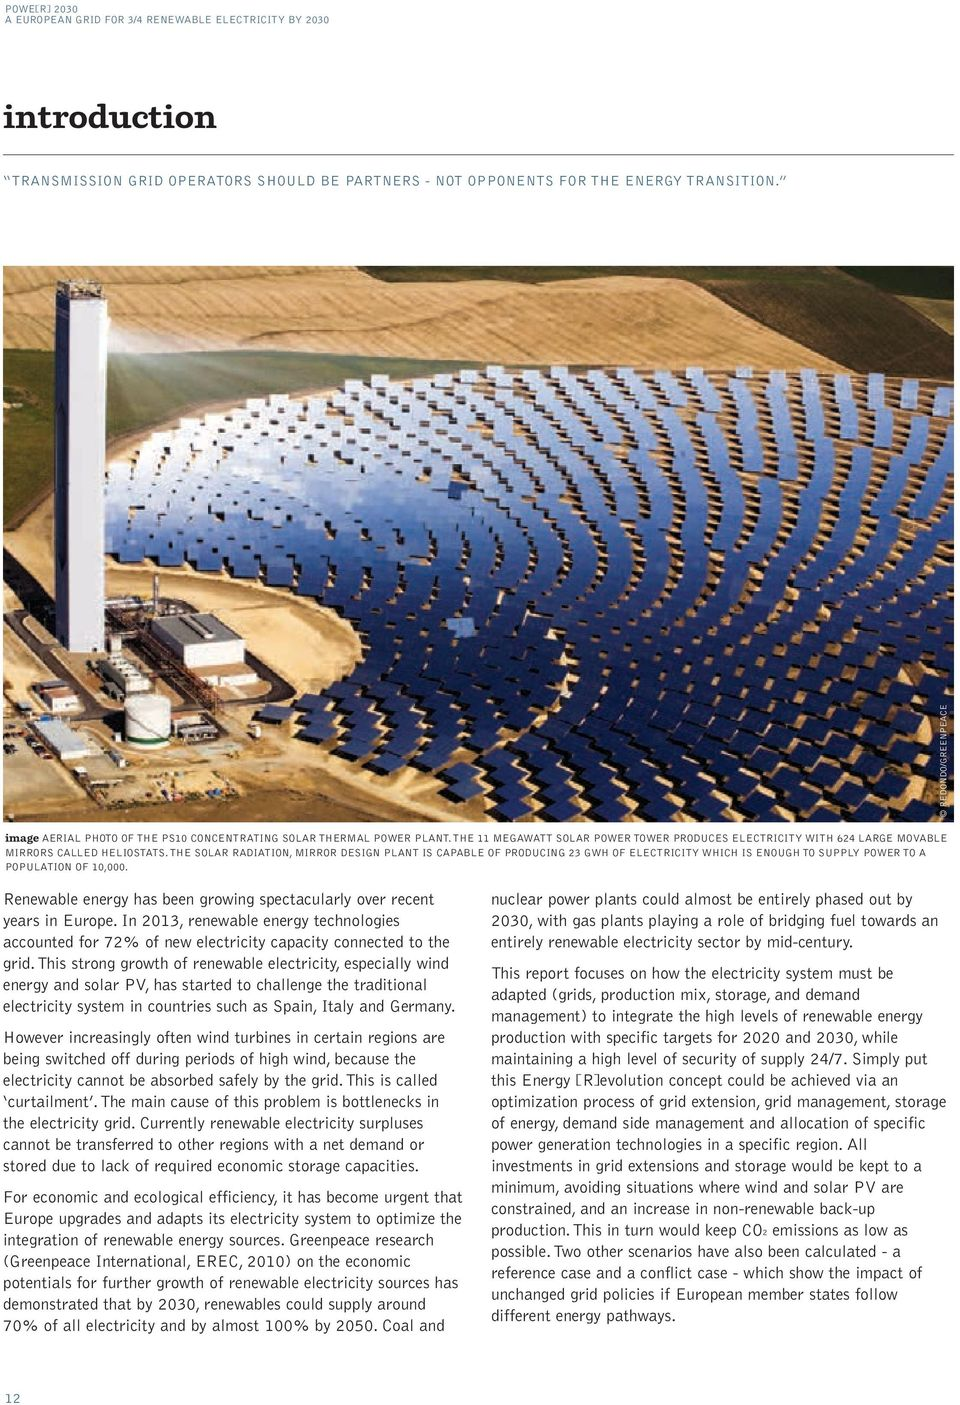 THE SOLAR RADIATION, MIRROR DESIGN PLANT IS CAPABLE OF PRODUCING 23 GWH OF ELECTRICITY WHICH IS ENOUGH TO SUPPLY POWER TO A POPULATION OF 10,000.